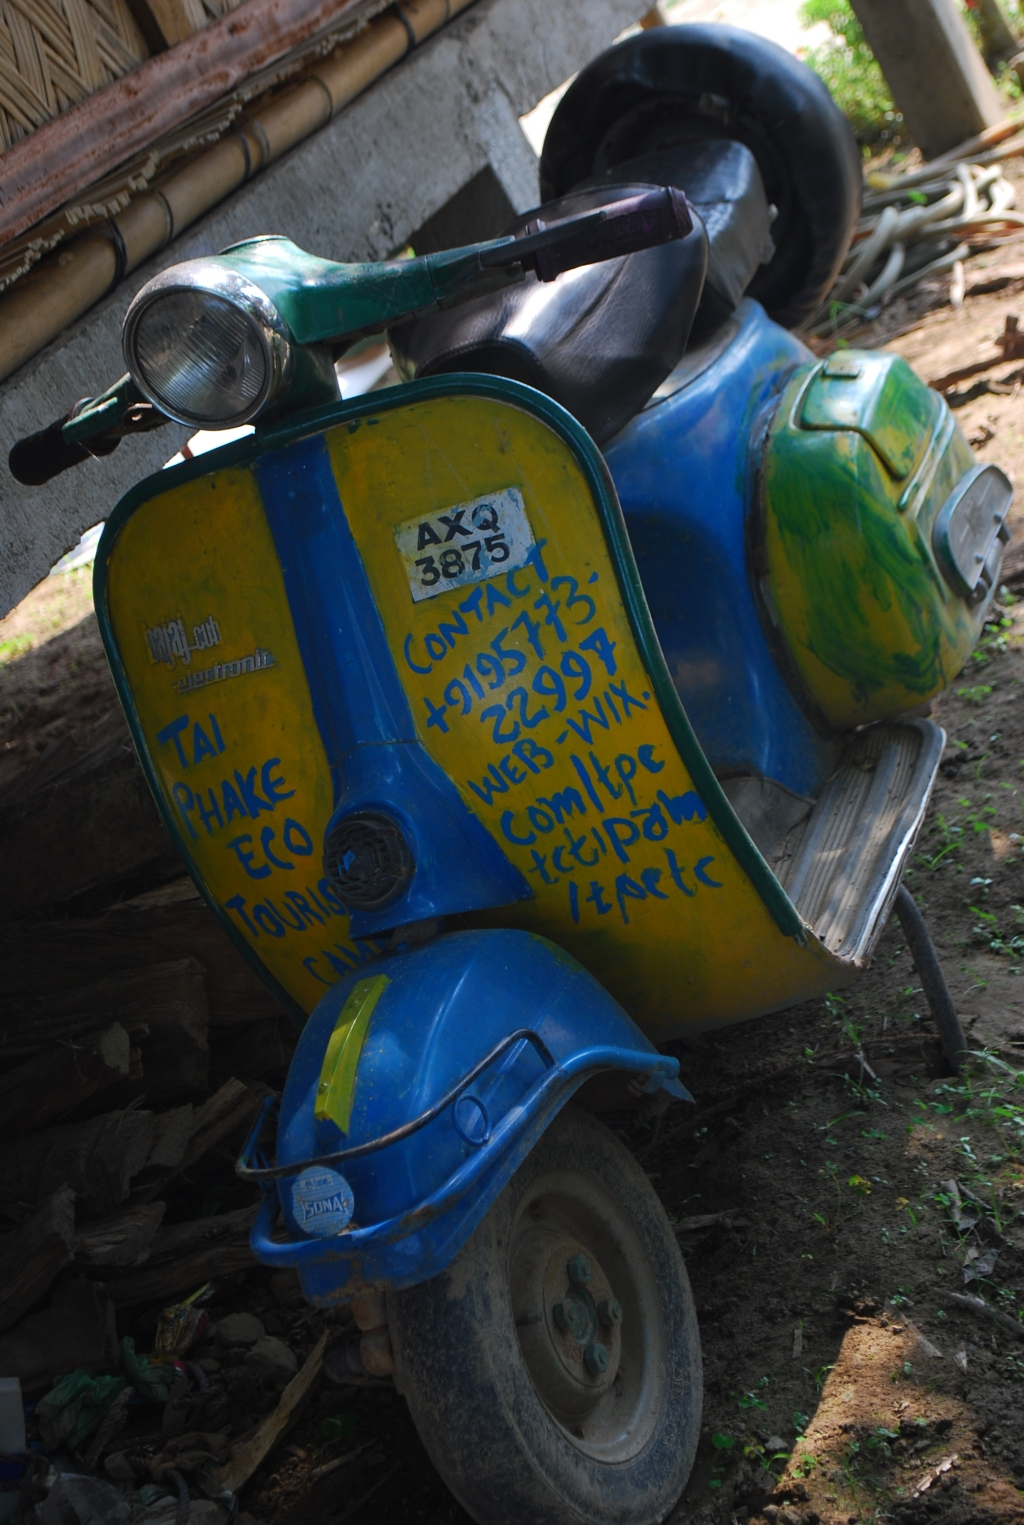 Old Scooter at Tai-Phake Camp, Assam